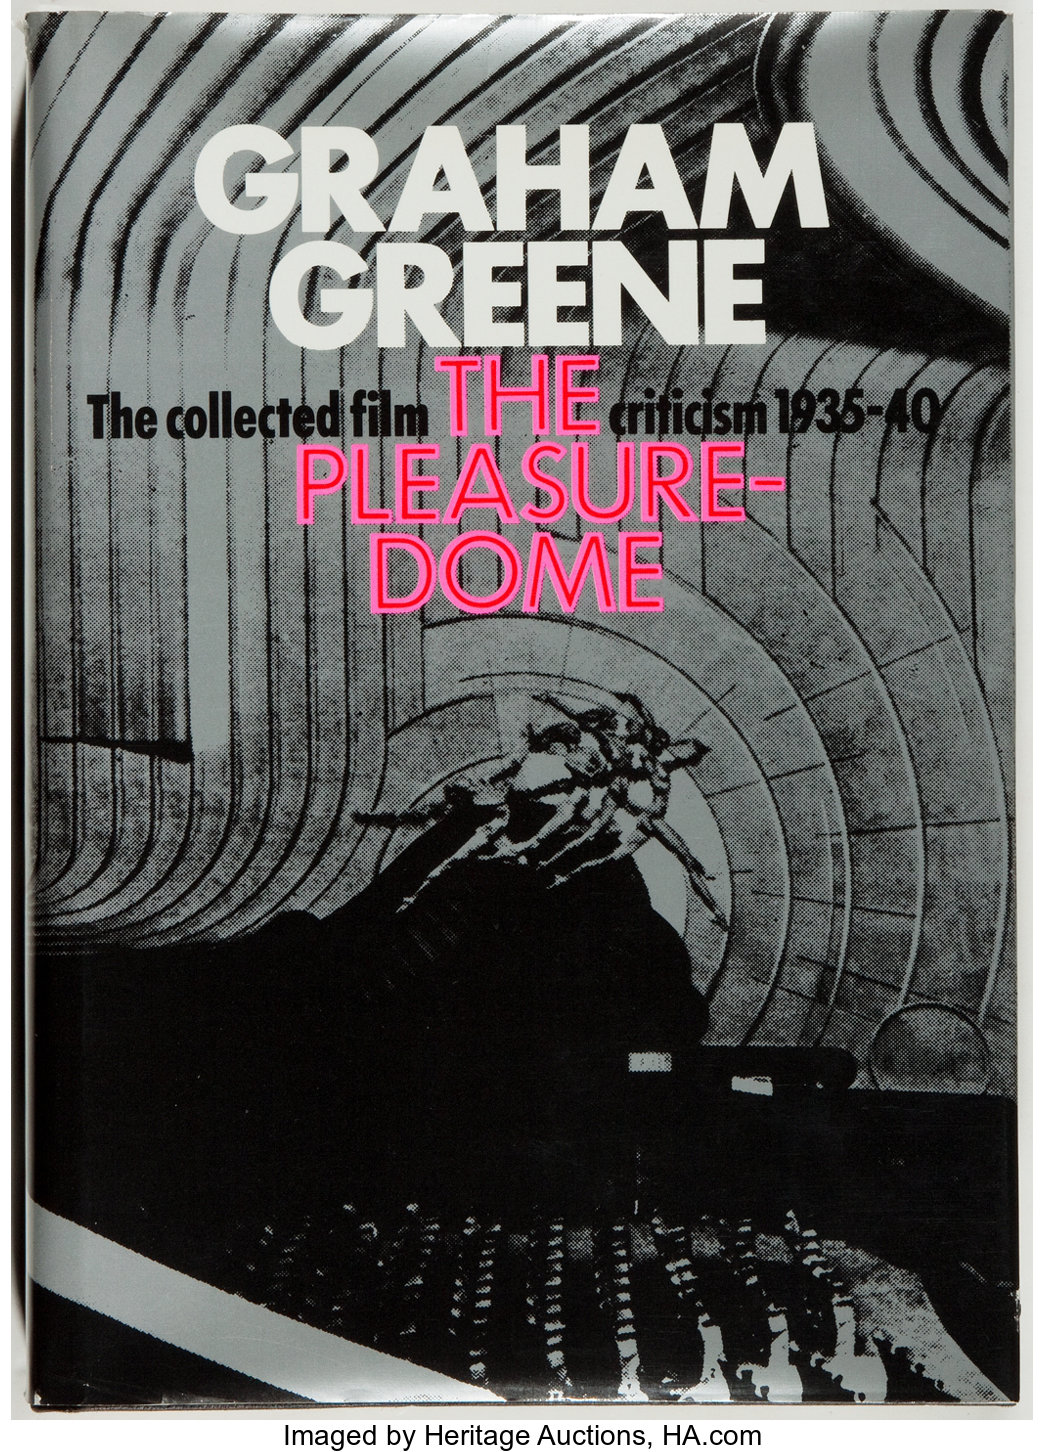 Film Criticism Graham Greene The Pleasure Dome The Collected Lot 92539 Heritage Auctions